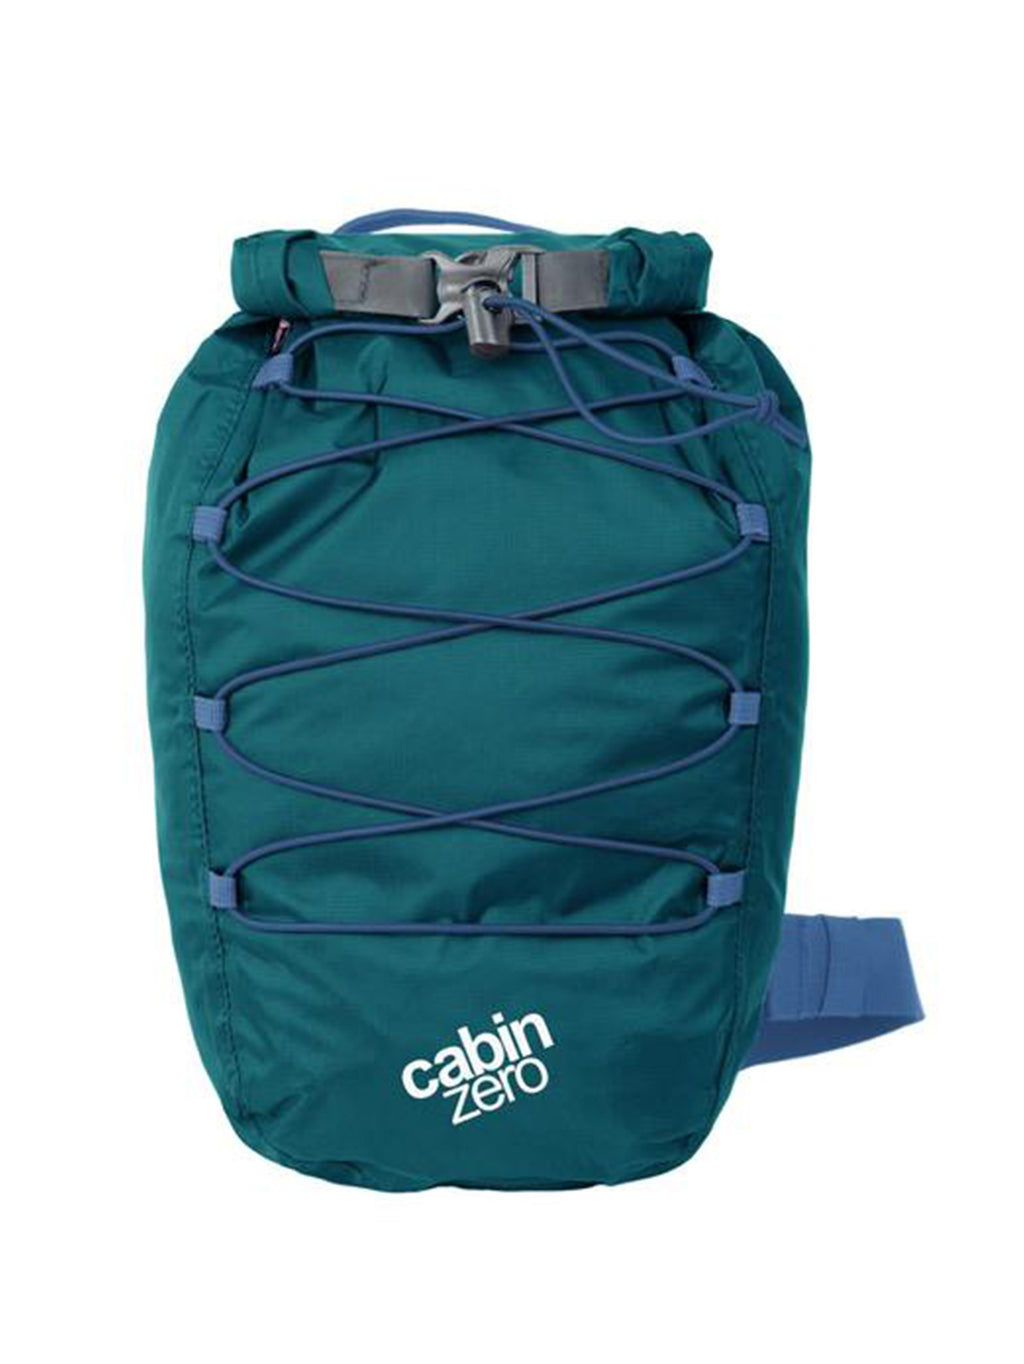 Cabinzero ADV Dry Waterproof Cross Body Bay 11L in Aruba Blue Color